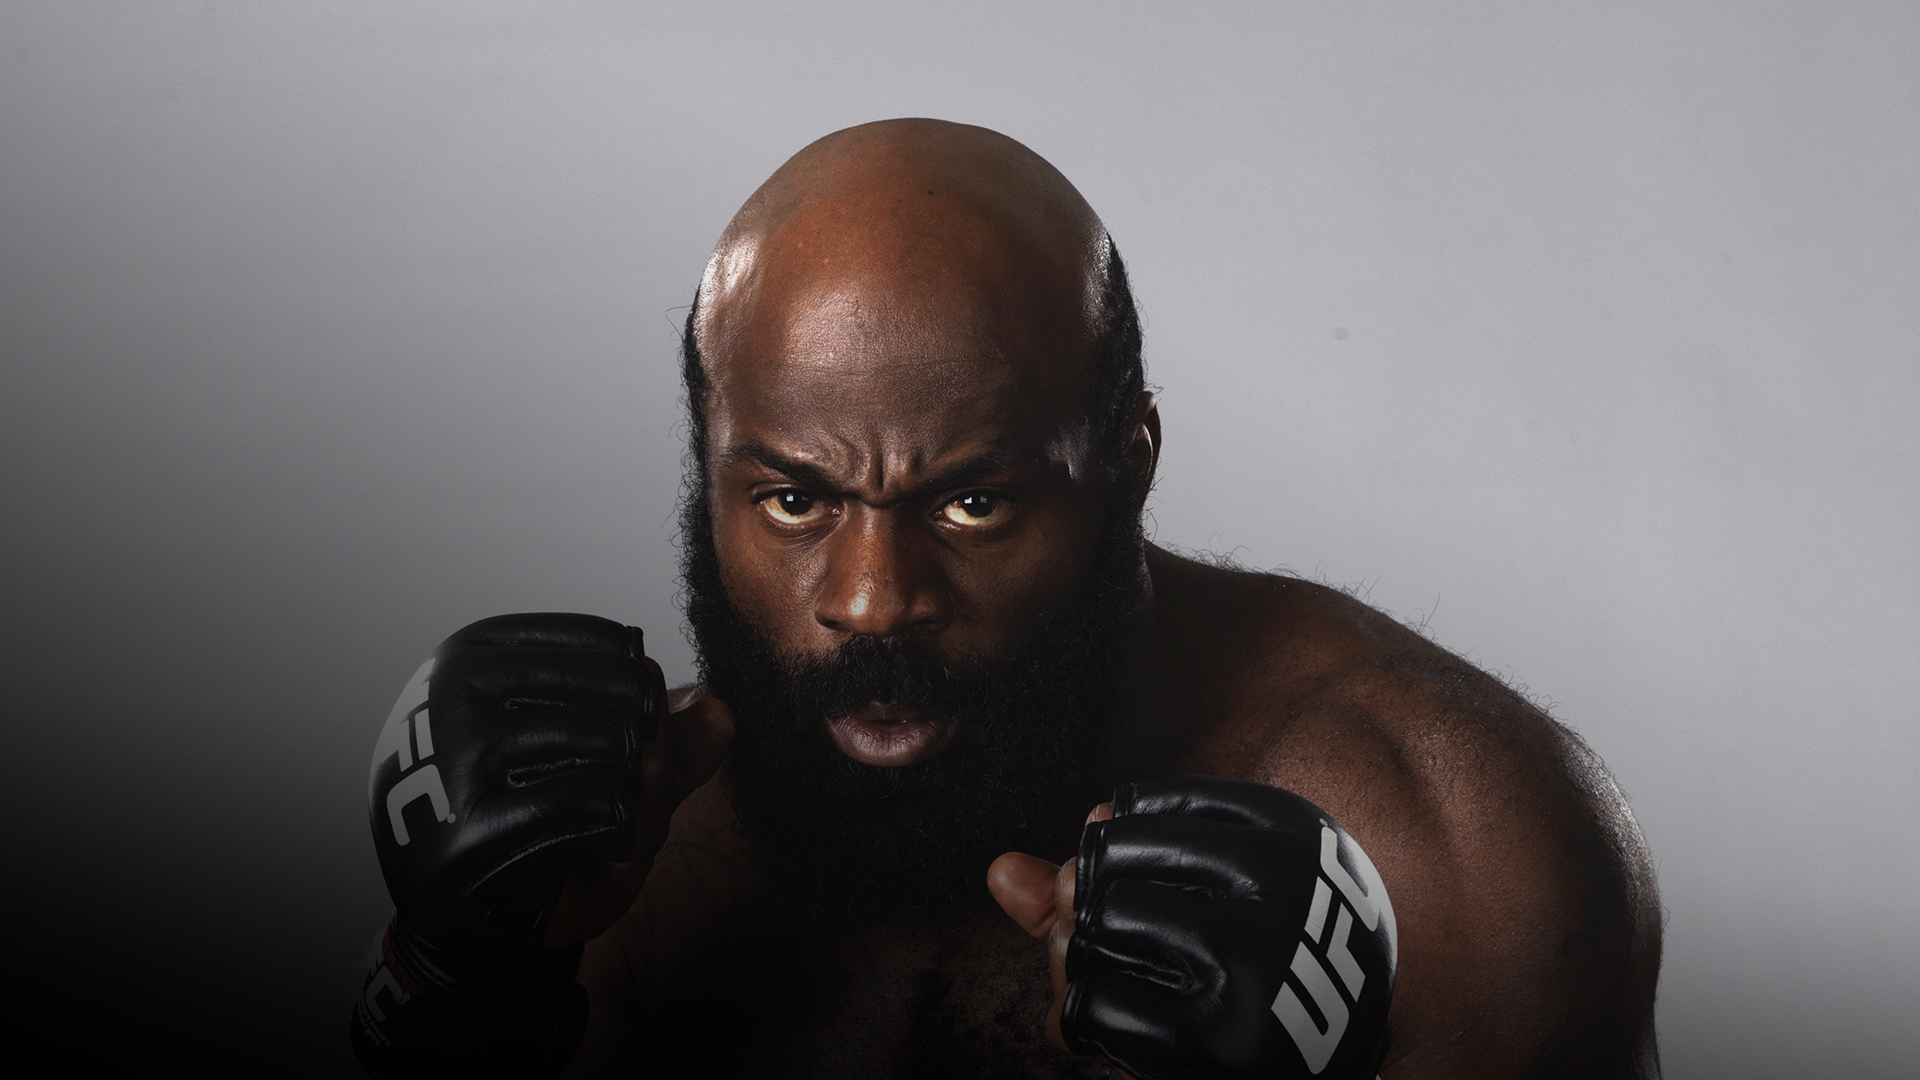 Kimbo Slice poses for a portrait during a UFC photo session on May 2, 2010 in Montreal, Quebec, Canada. (Photo by Josh Hedges/Zuffa LLC)